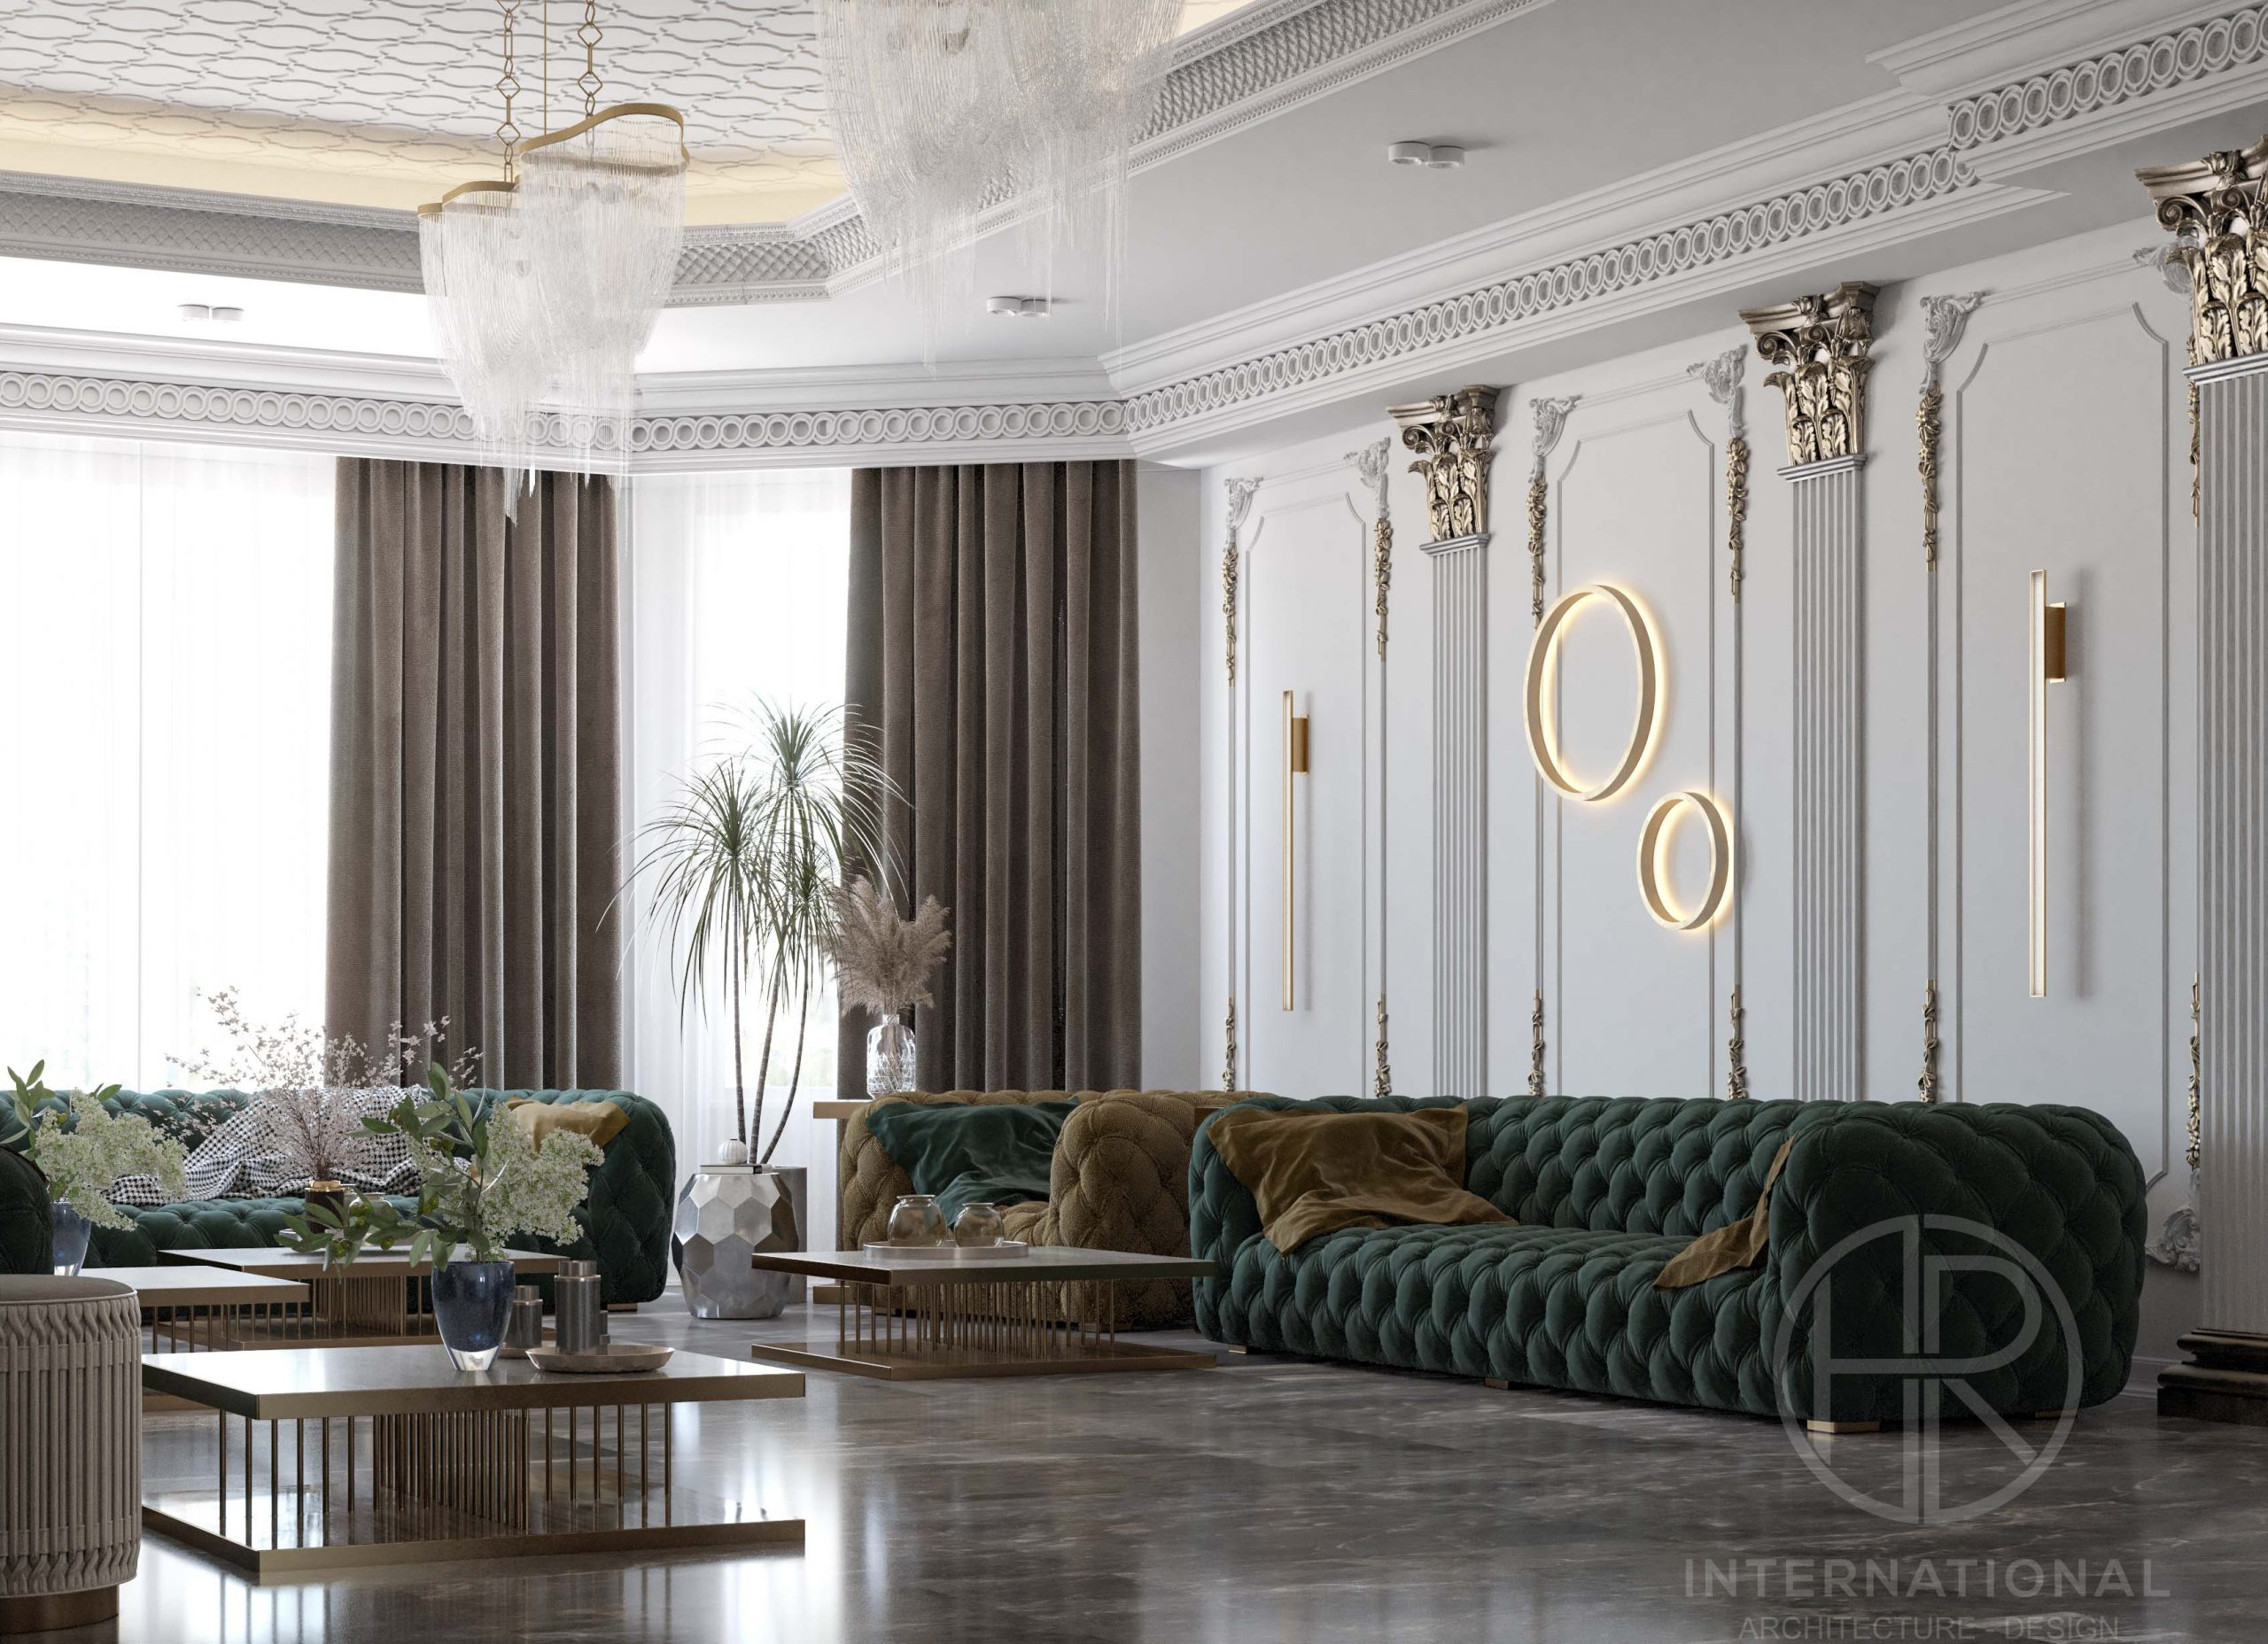 GREEN - FURNITURE - CURTAINS -DELUXE MEN'S MAJLES